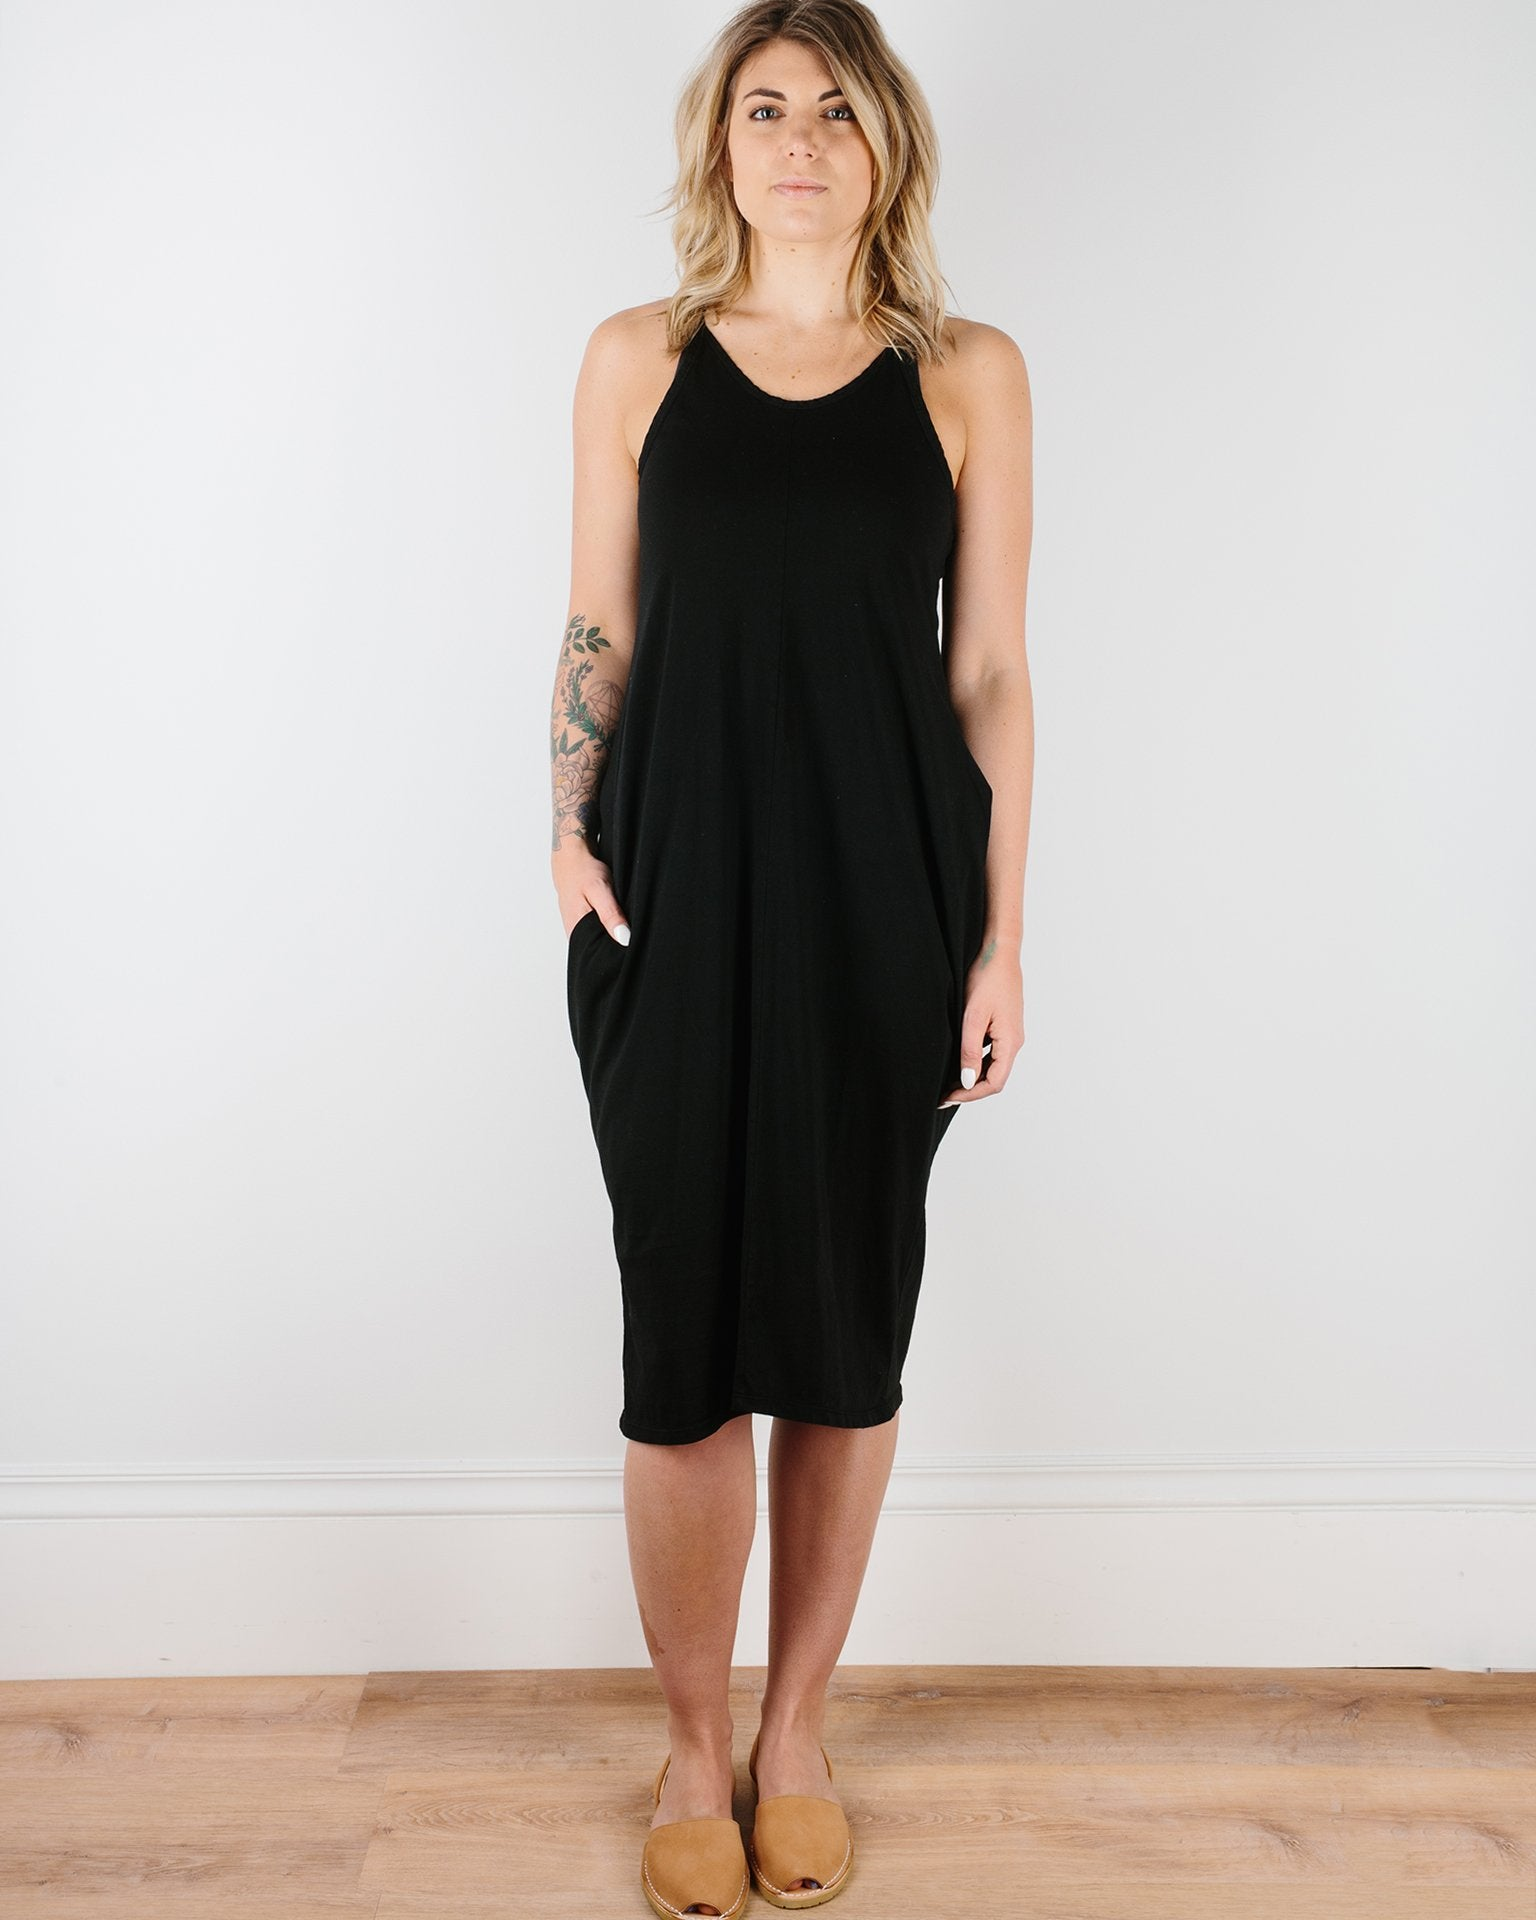 Prairie Underground Clothing Black / XS Sito Dress